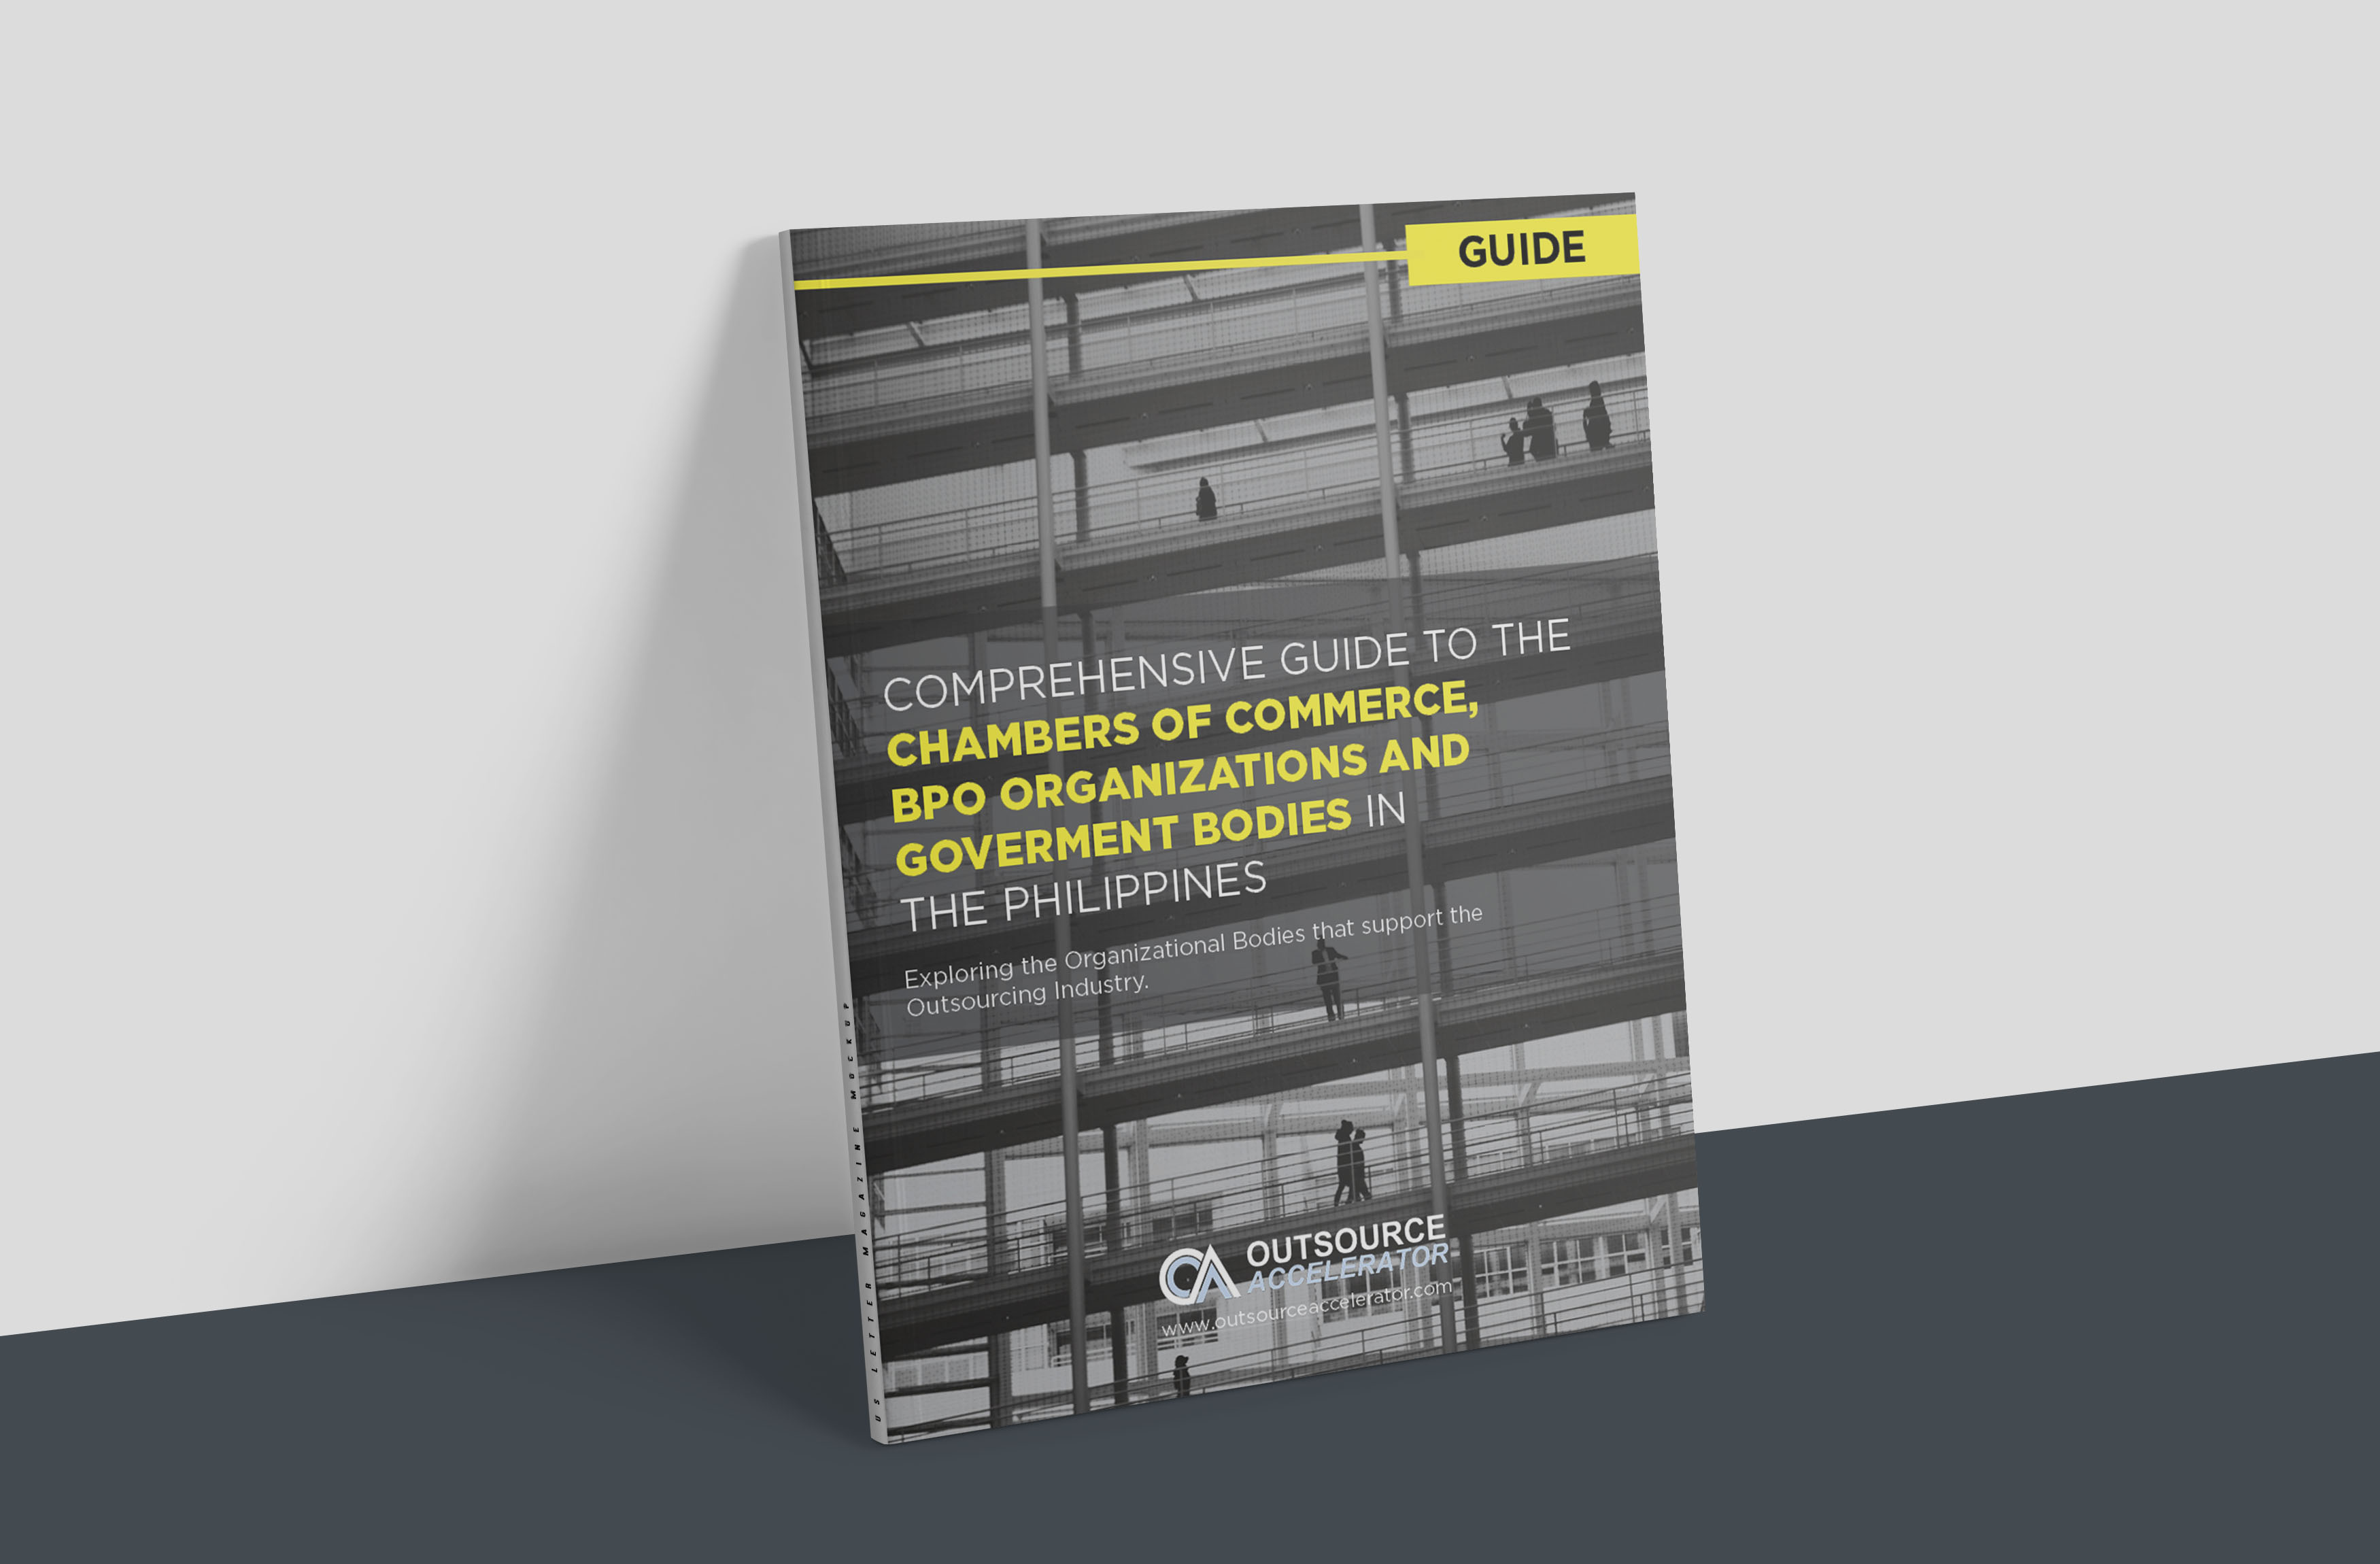 Comprehensive Guide to Chambers of Commerce, BPO Organizations and Government Bodies in the Philippines